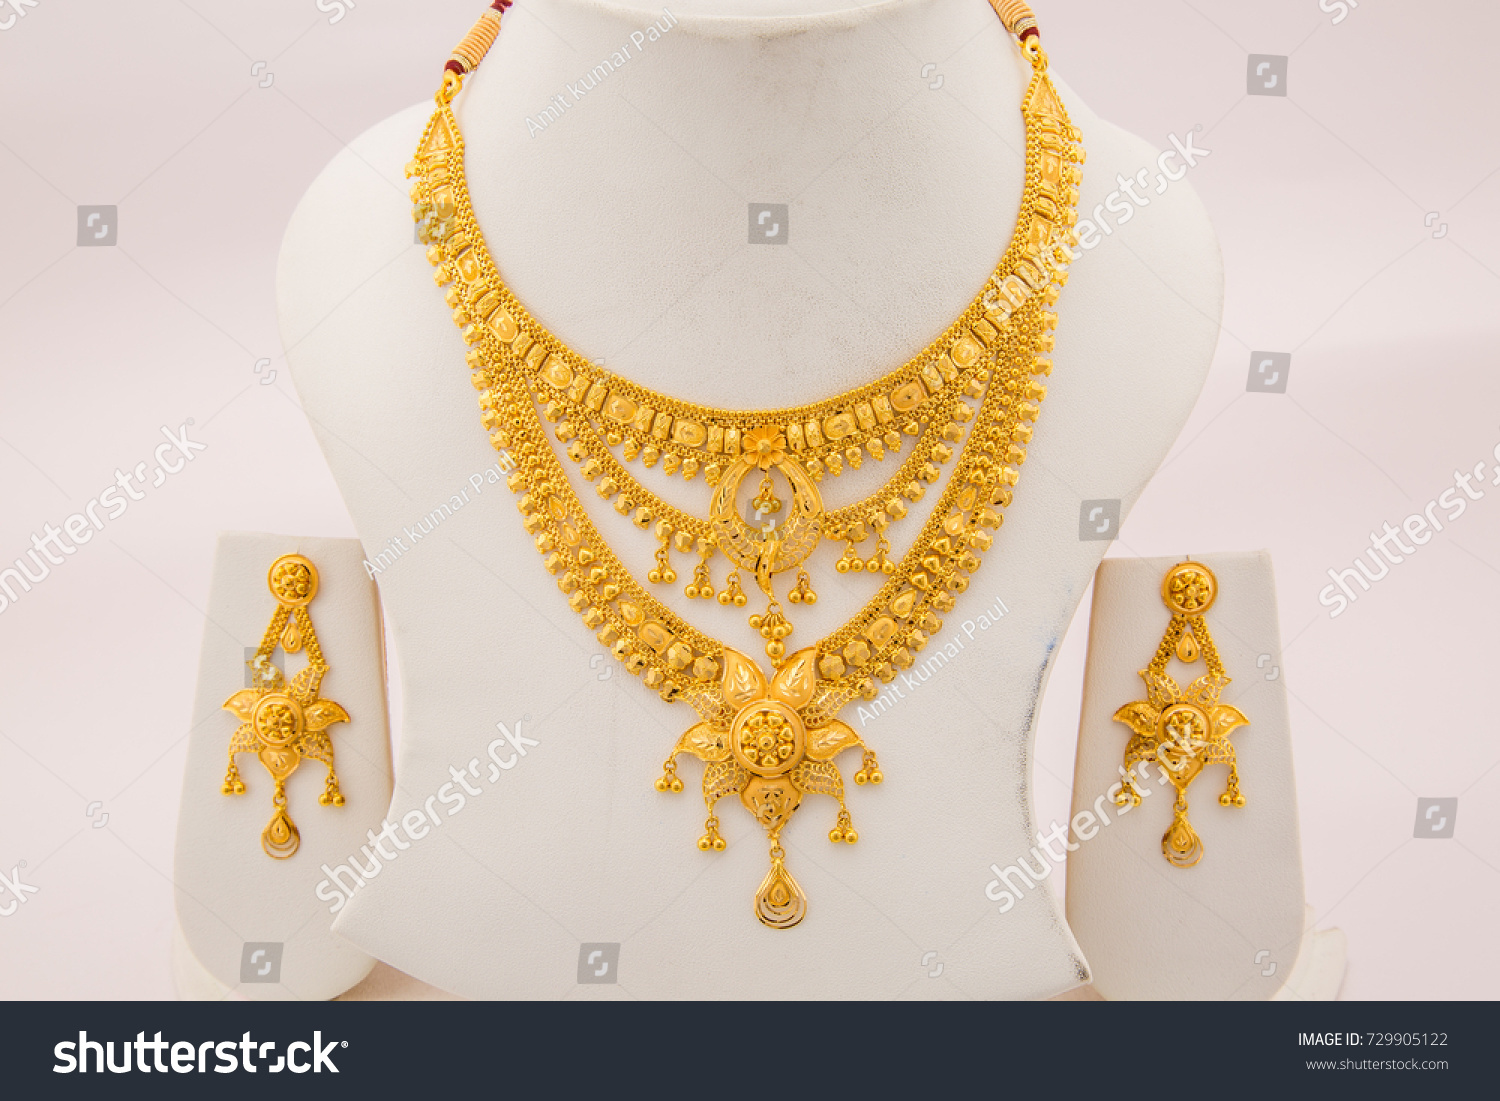 Bridal Collection Three Layer Beads Intricate Stock Photo ...